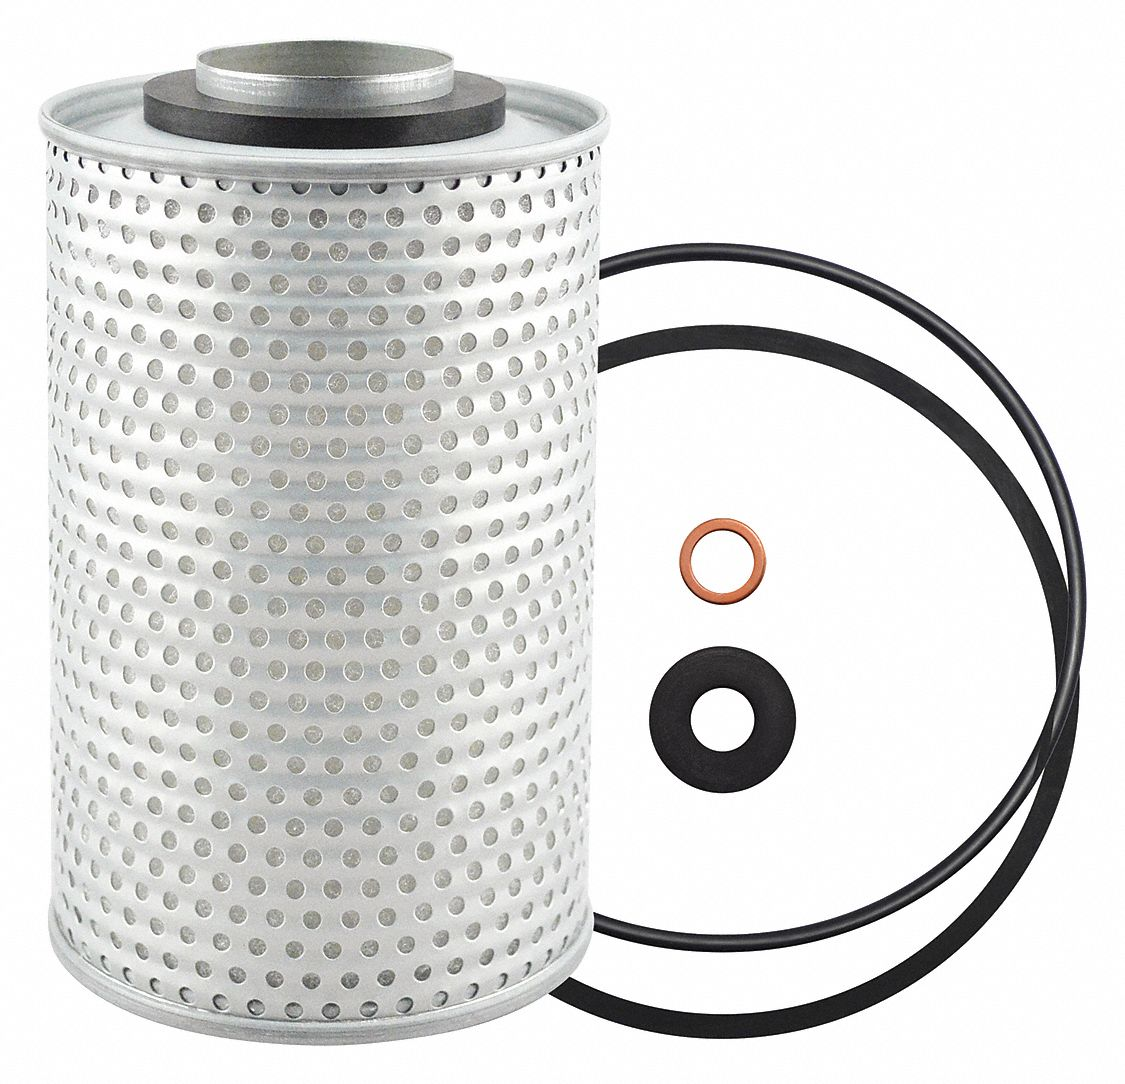 BALDWIN FILTERS Spin-On Oil Filter Element, Length: 6-1/16